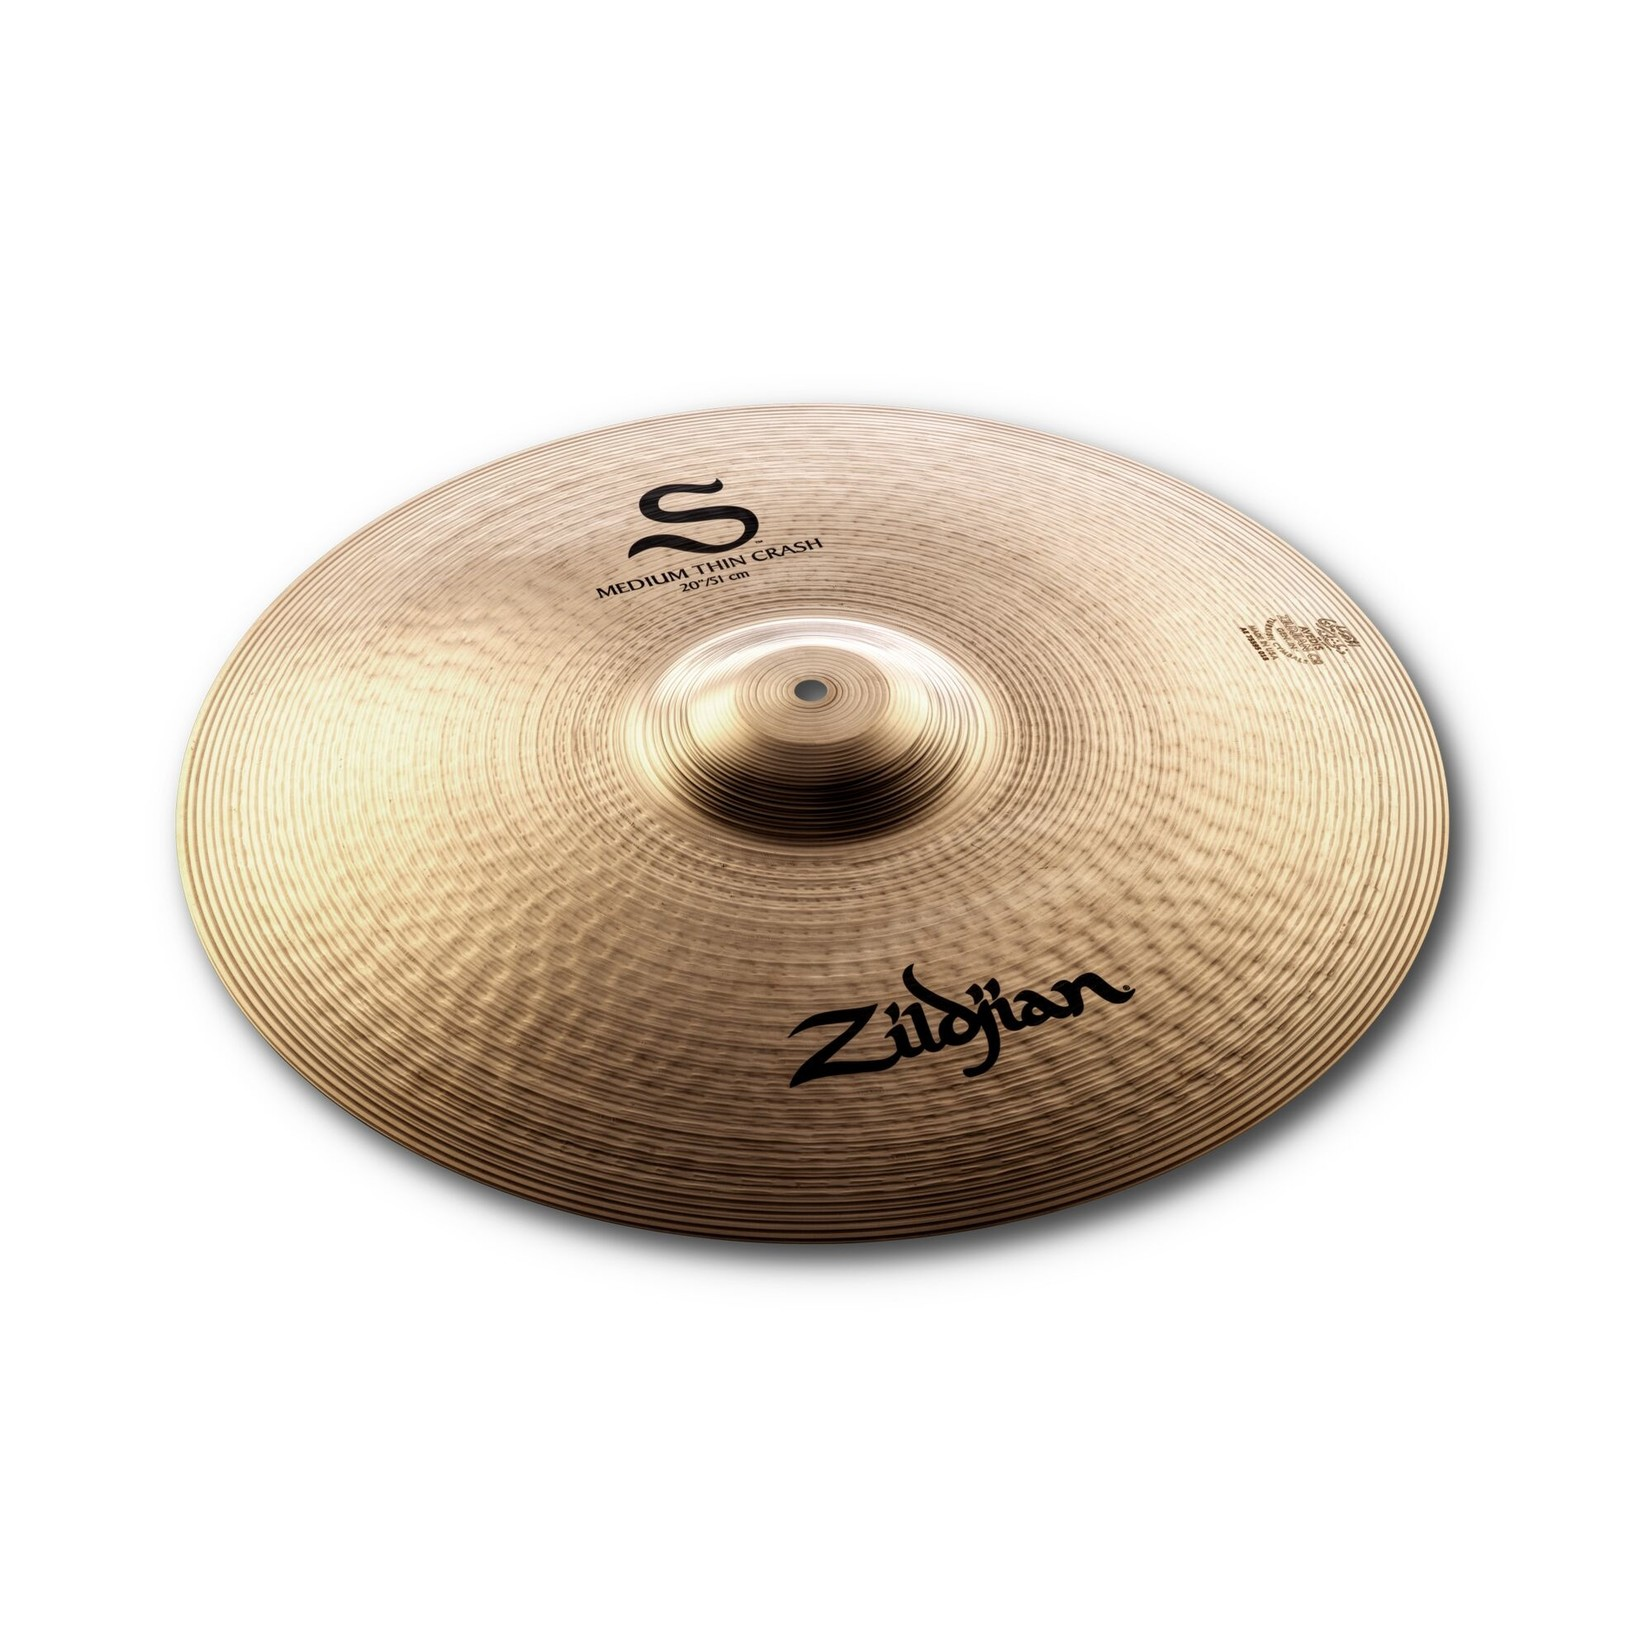 "Zildjian Zildjian 20"" S Medium Thin Crash"